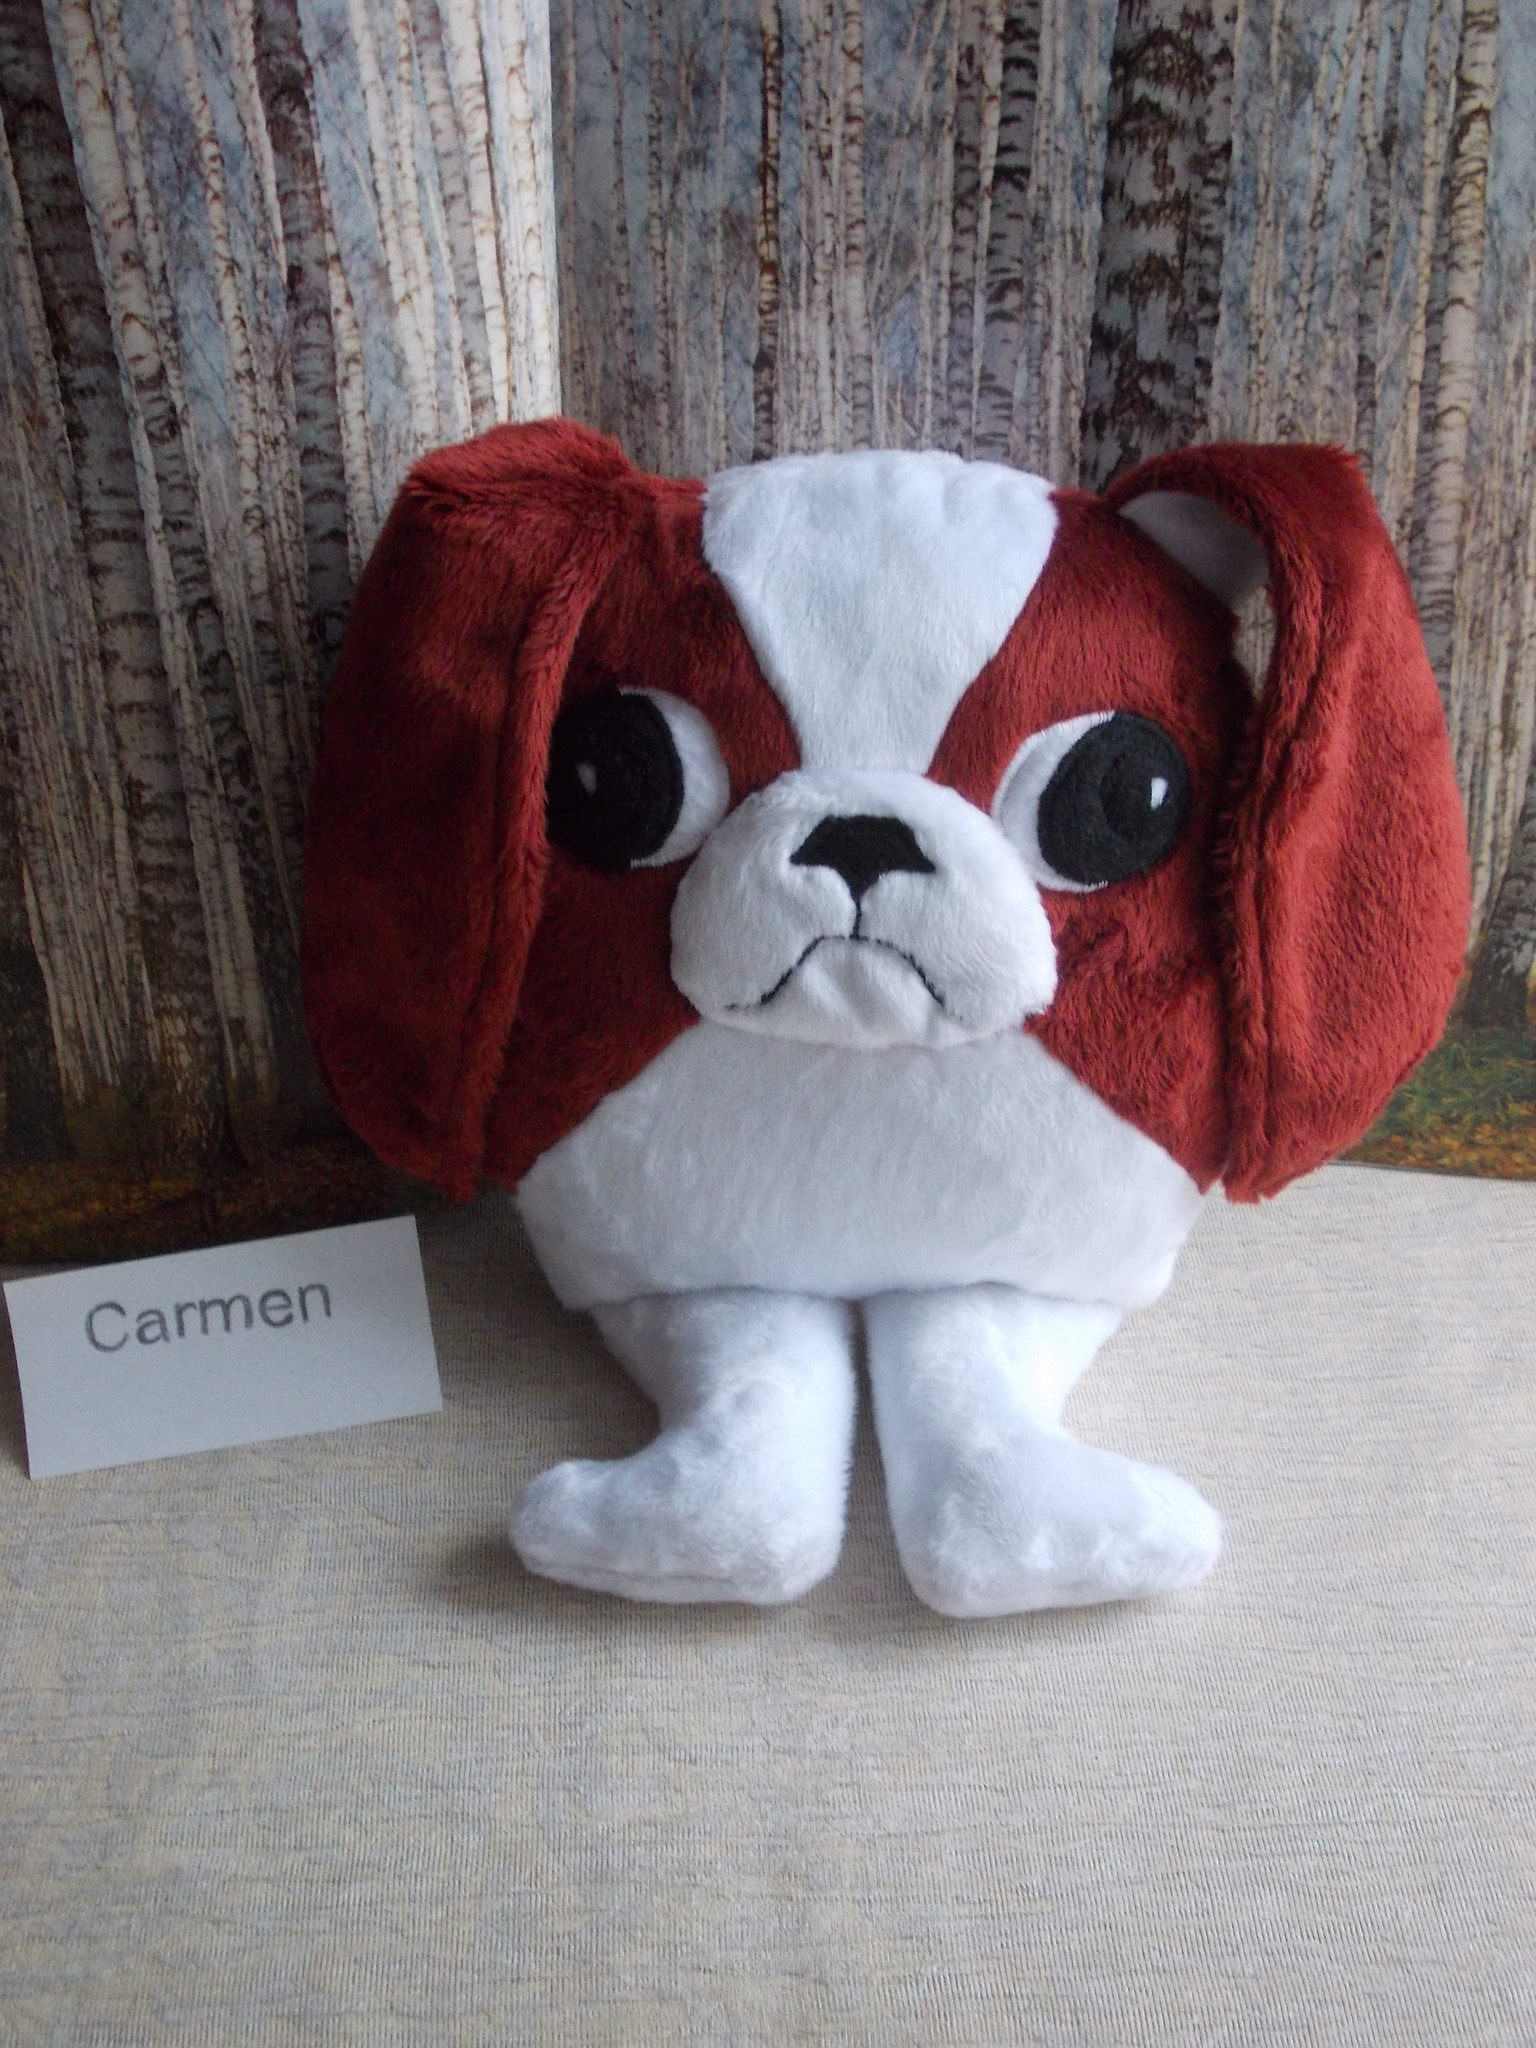 stuffed animal red white japanese chin dog plush toy Carmen name_9